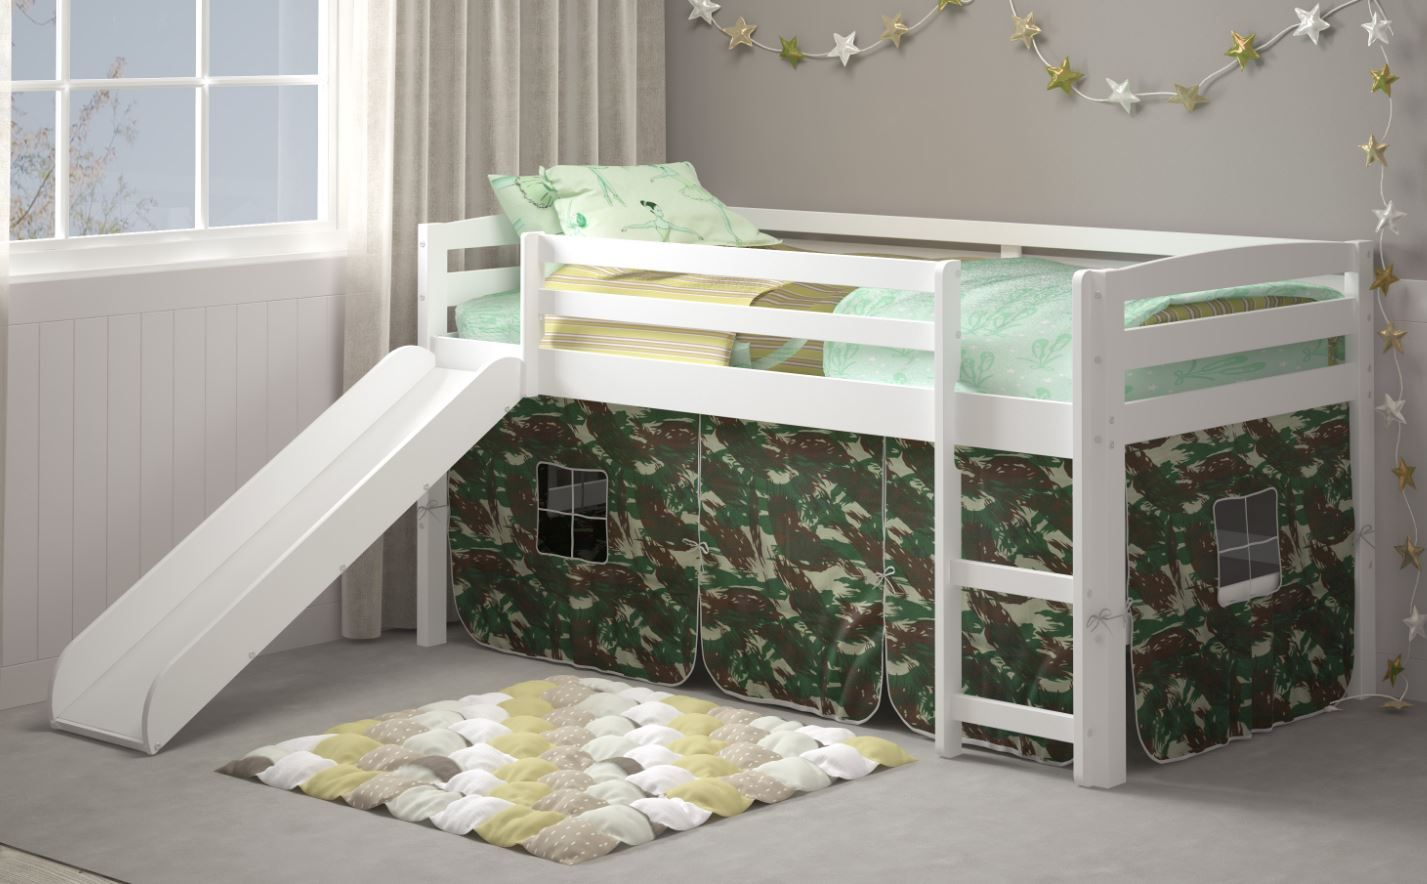 Danny Camo Tent Loft Bed W Slide Ladder Chelsea Home Furniture 36st 4700 Wh C In 2020 Bed With Slide Bed Furniture